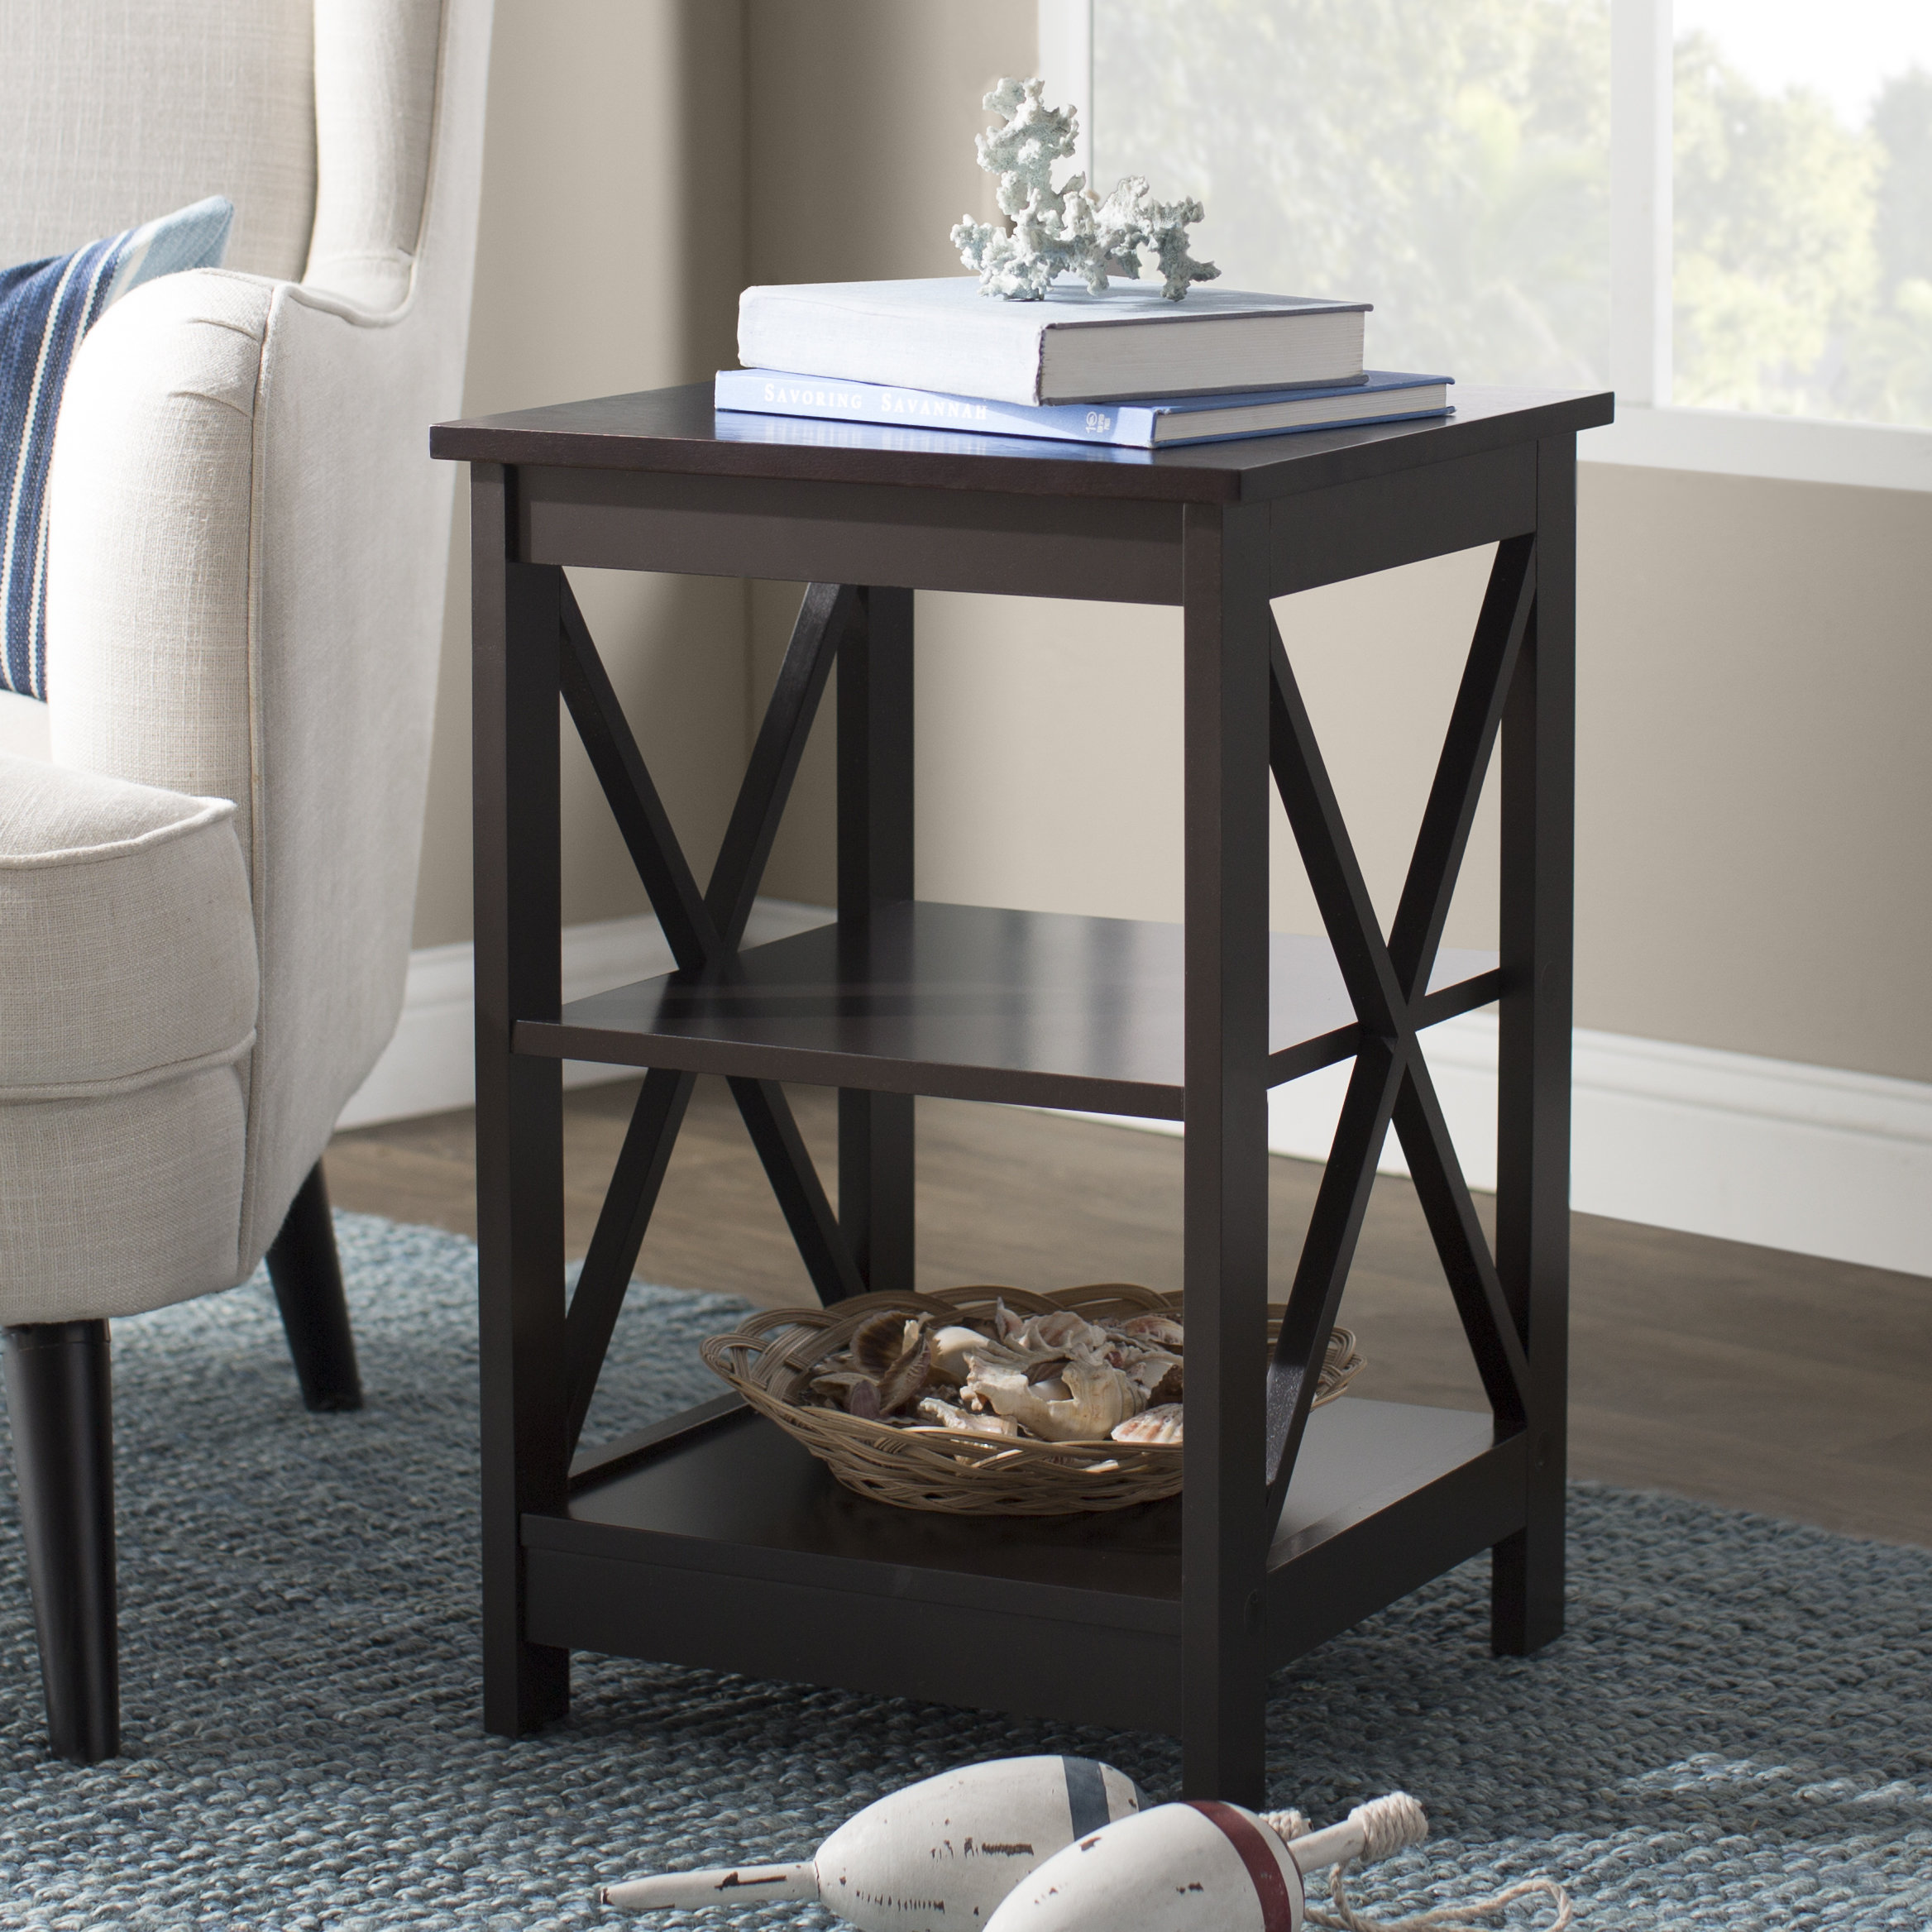 beachcrest home stoneford end table reviews white accent nursery reclaimed wood chairs wicker storage coffee black and diamond rug blue tray for western your focus runner pattern